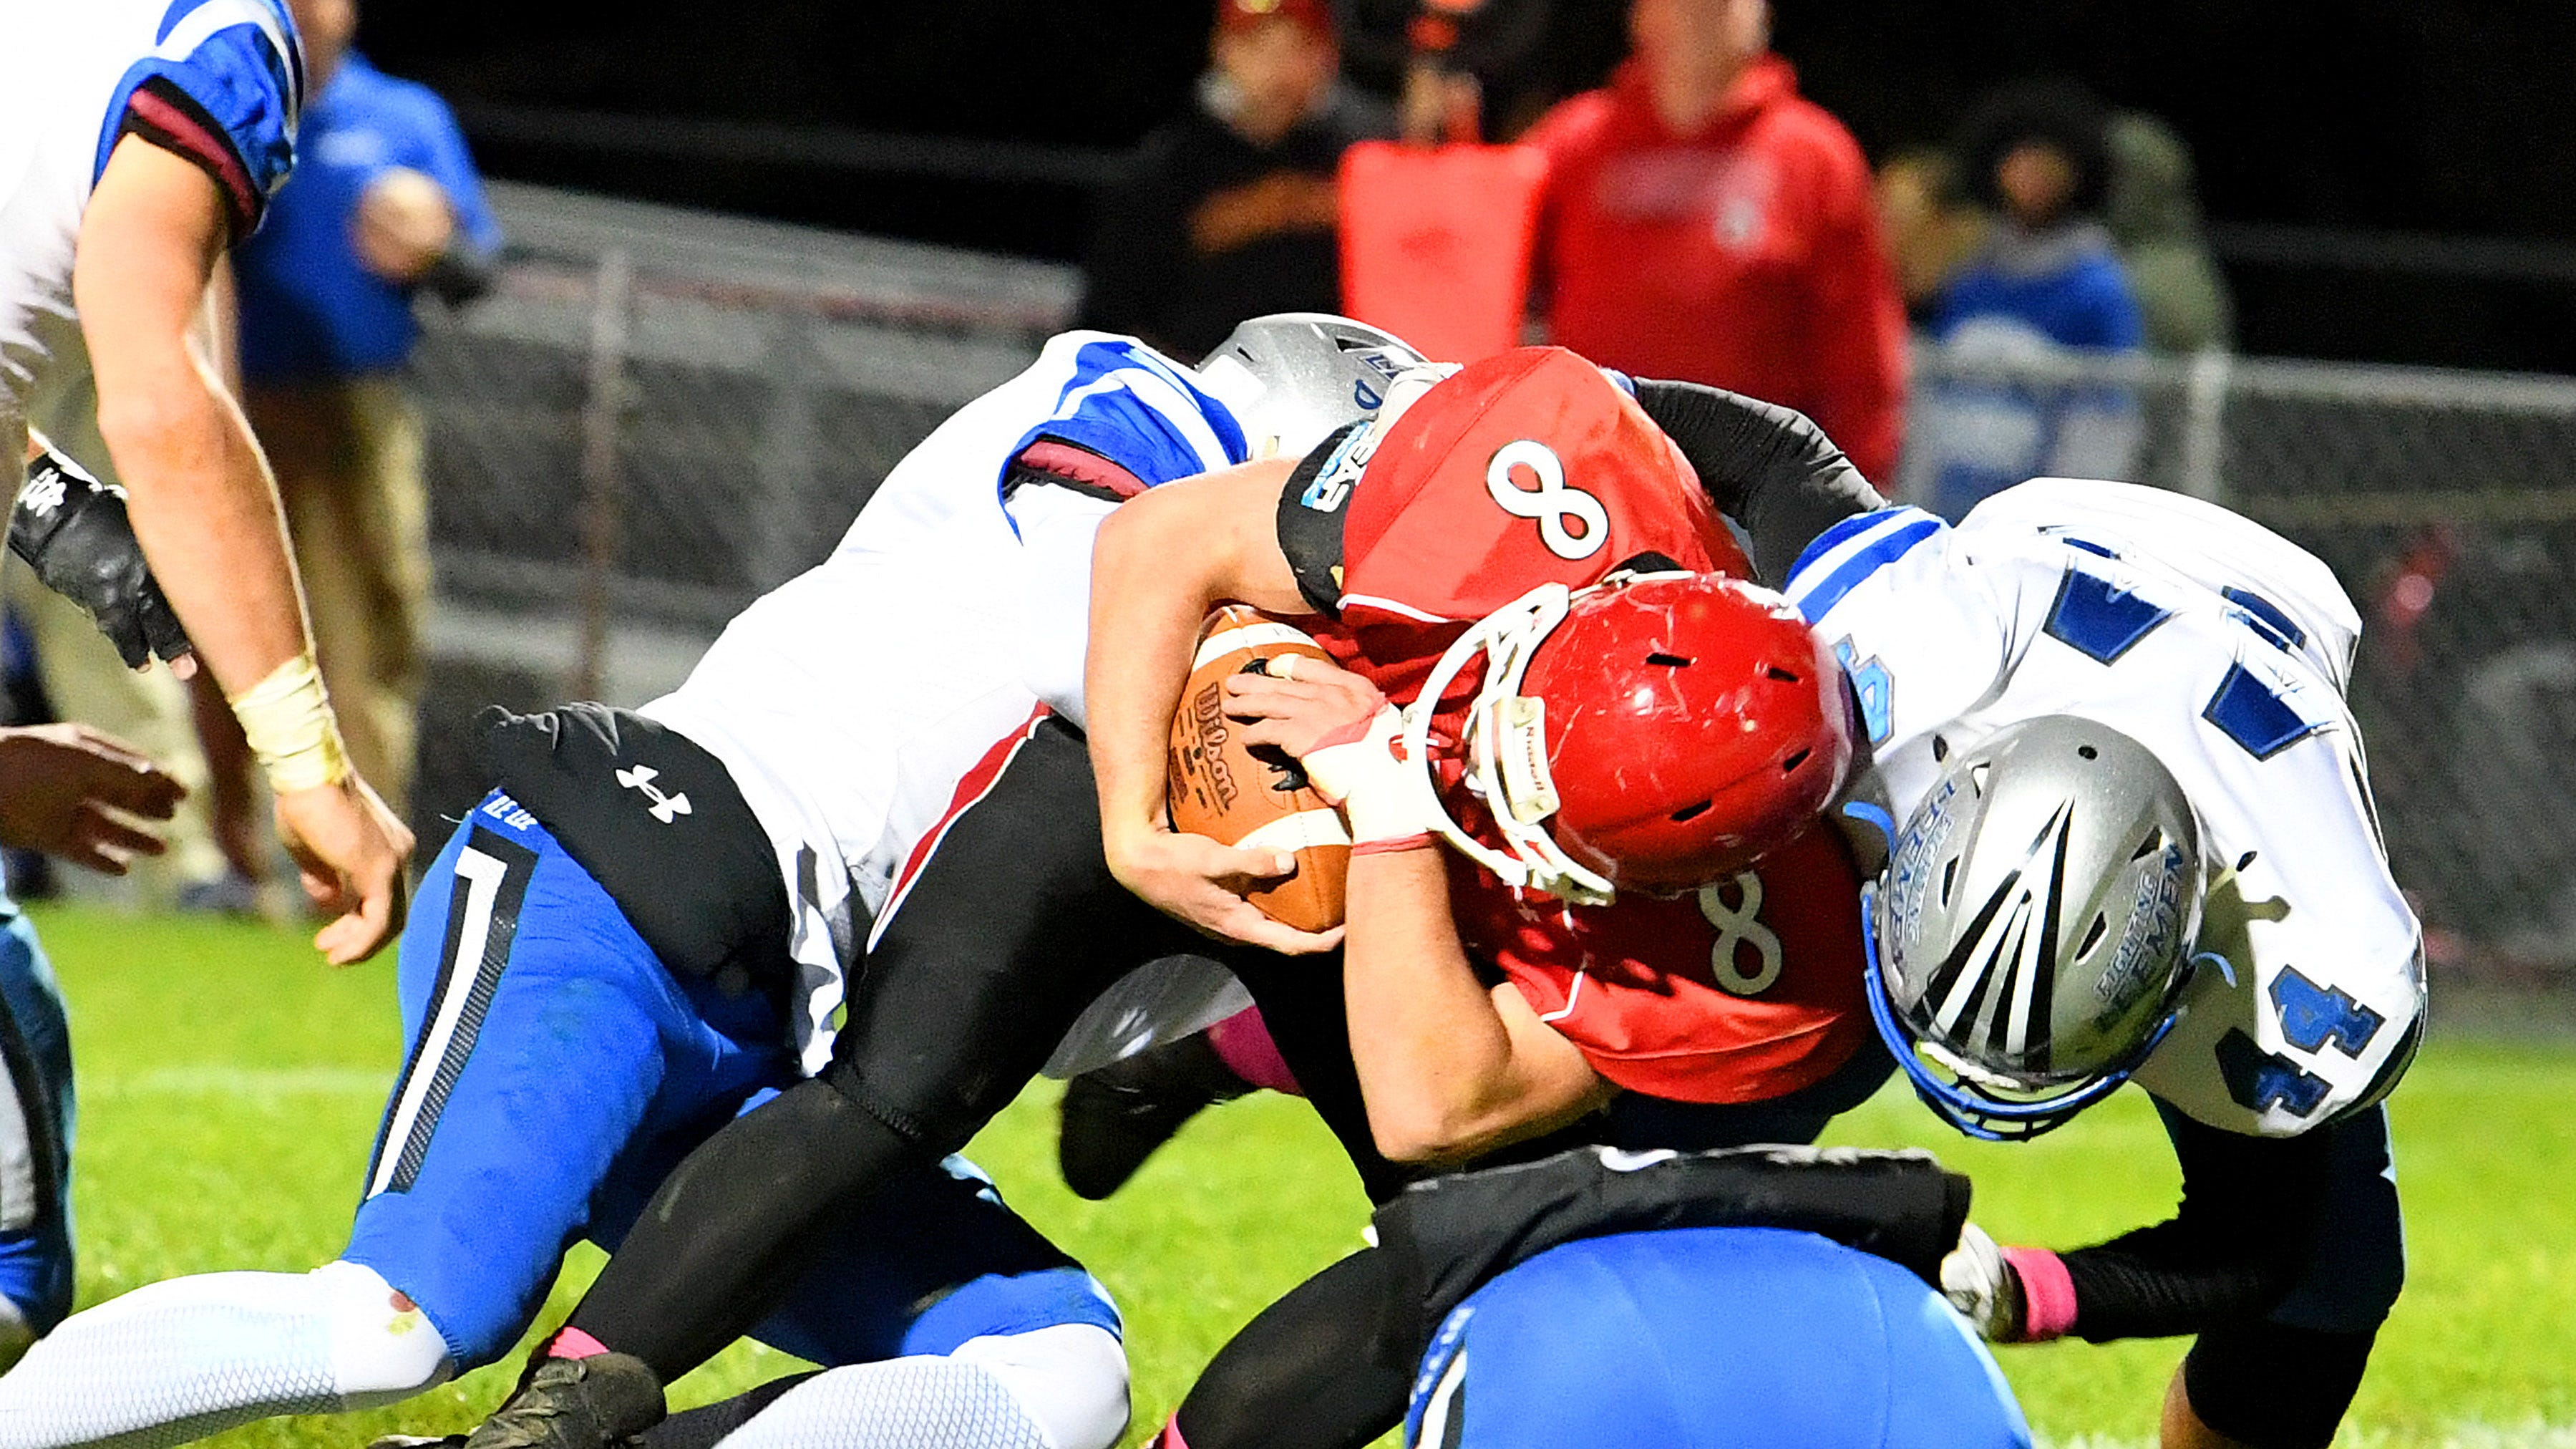 Shenandoah, Valley District football standings through Oct. 19